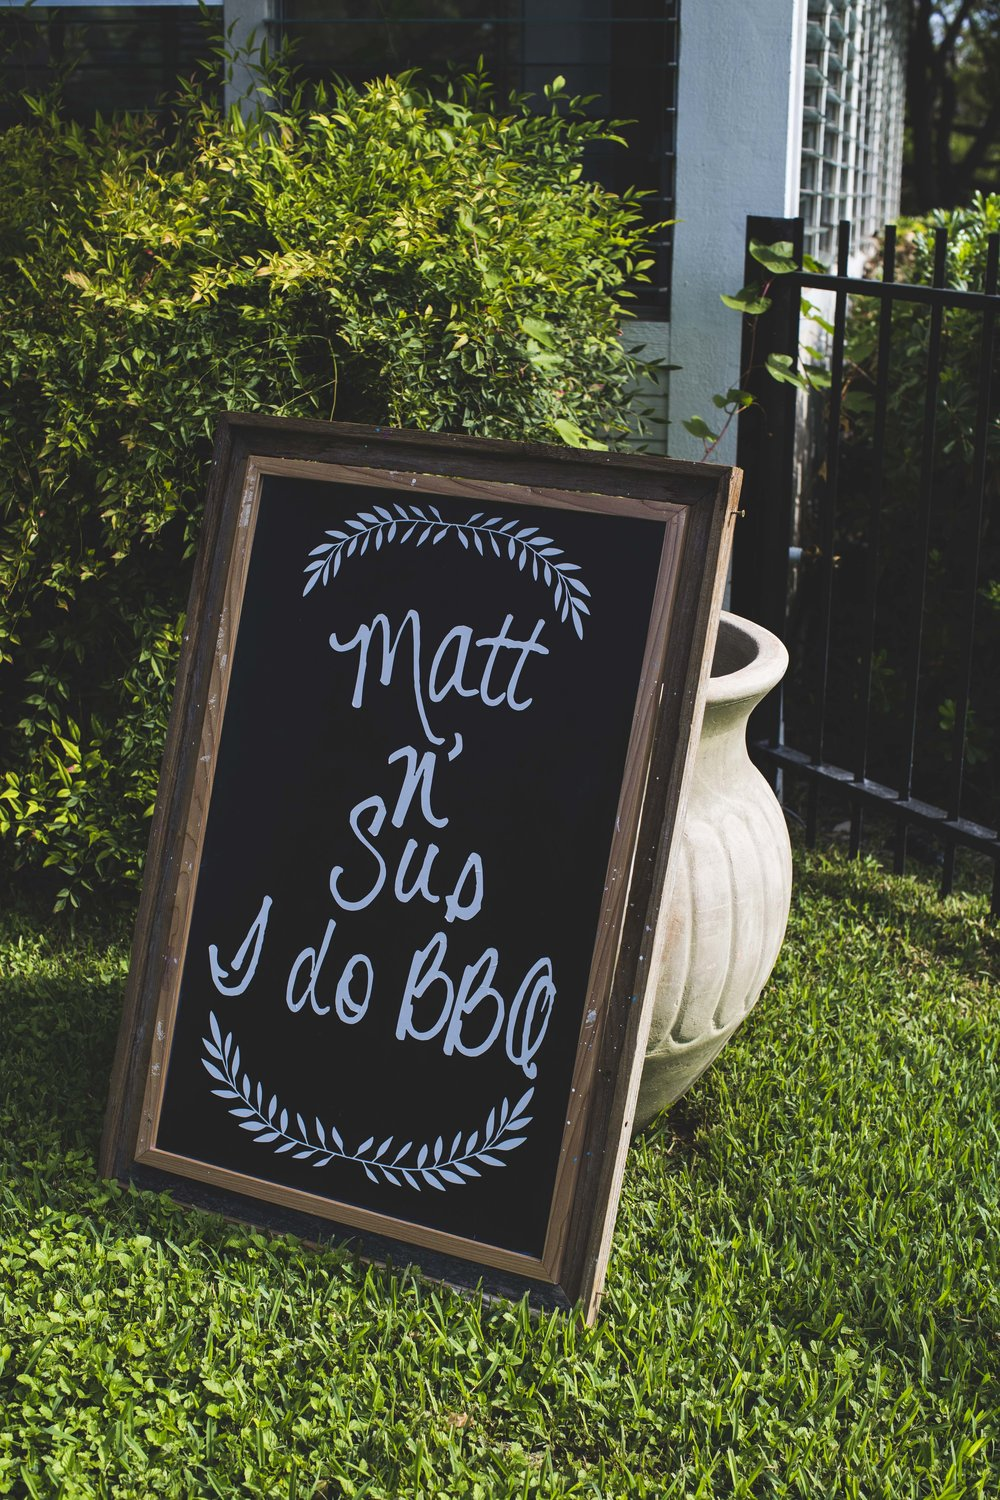 0ATGI_Susanna & Matt Wedding_717A7185.jpg